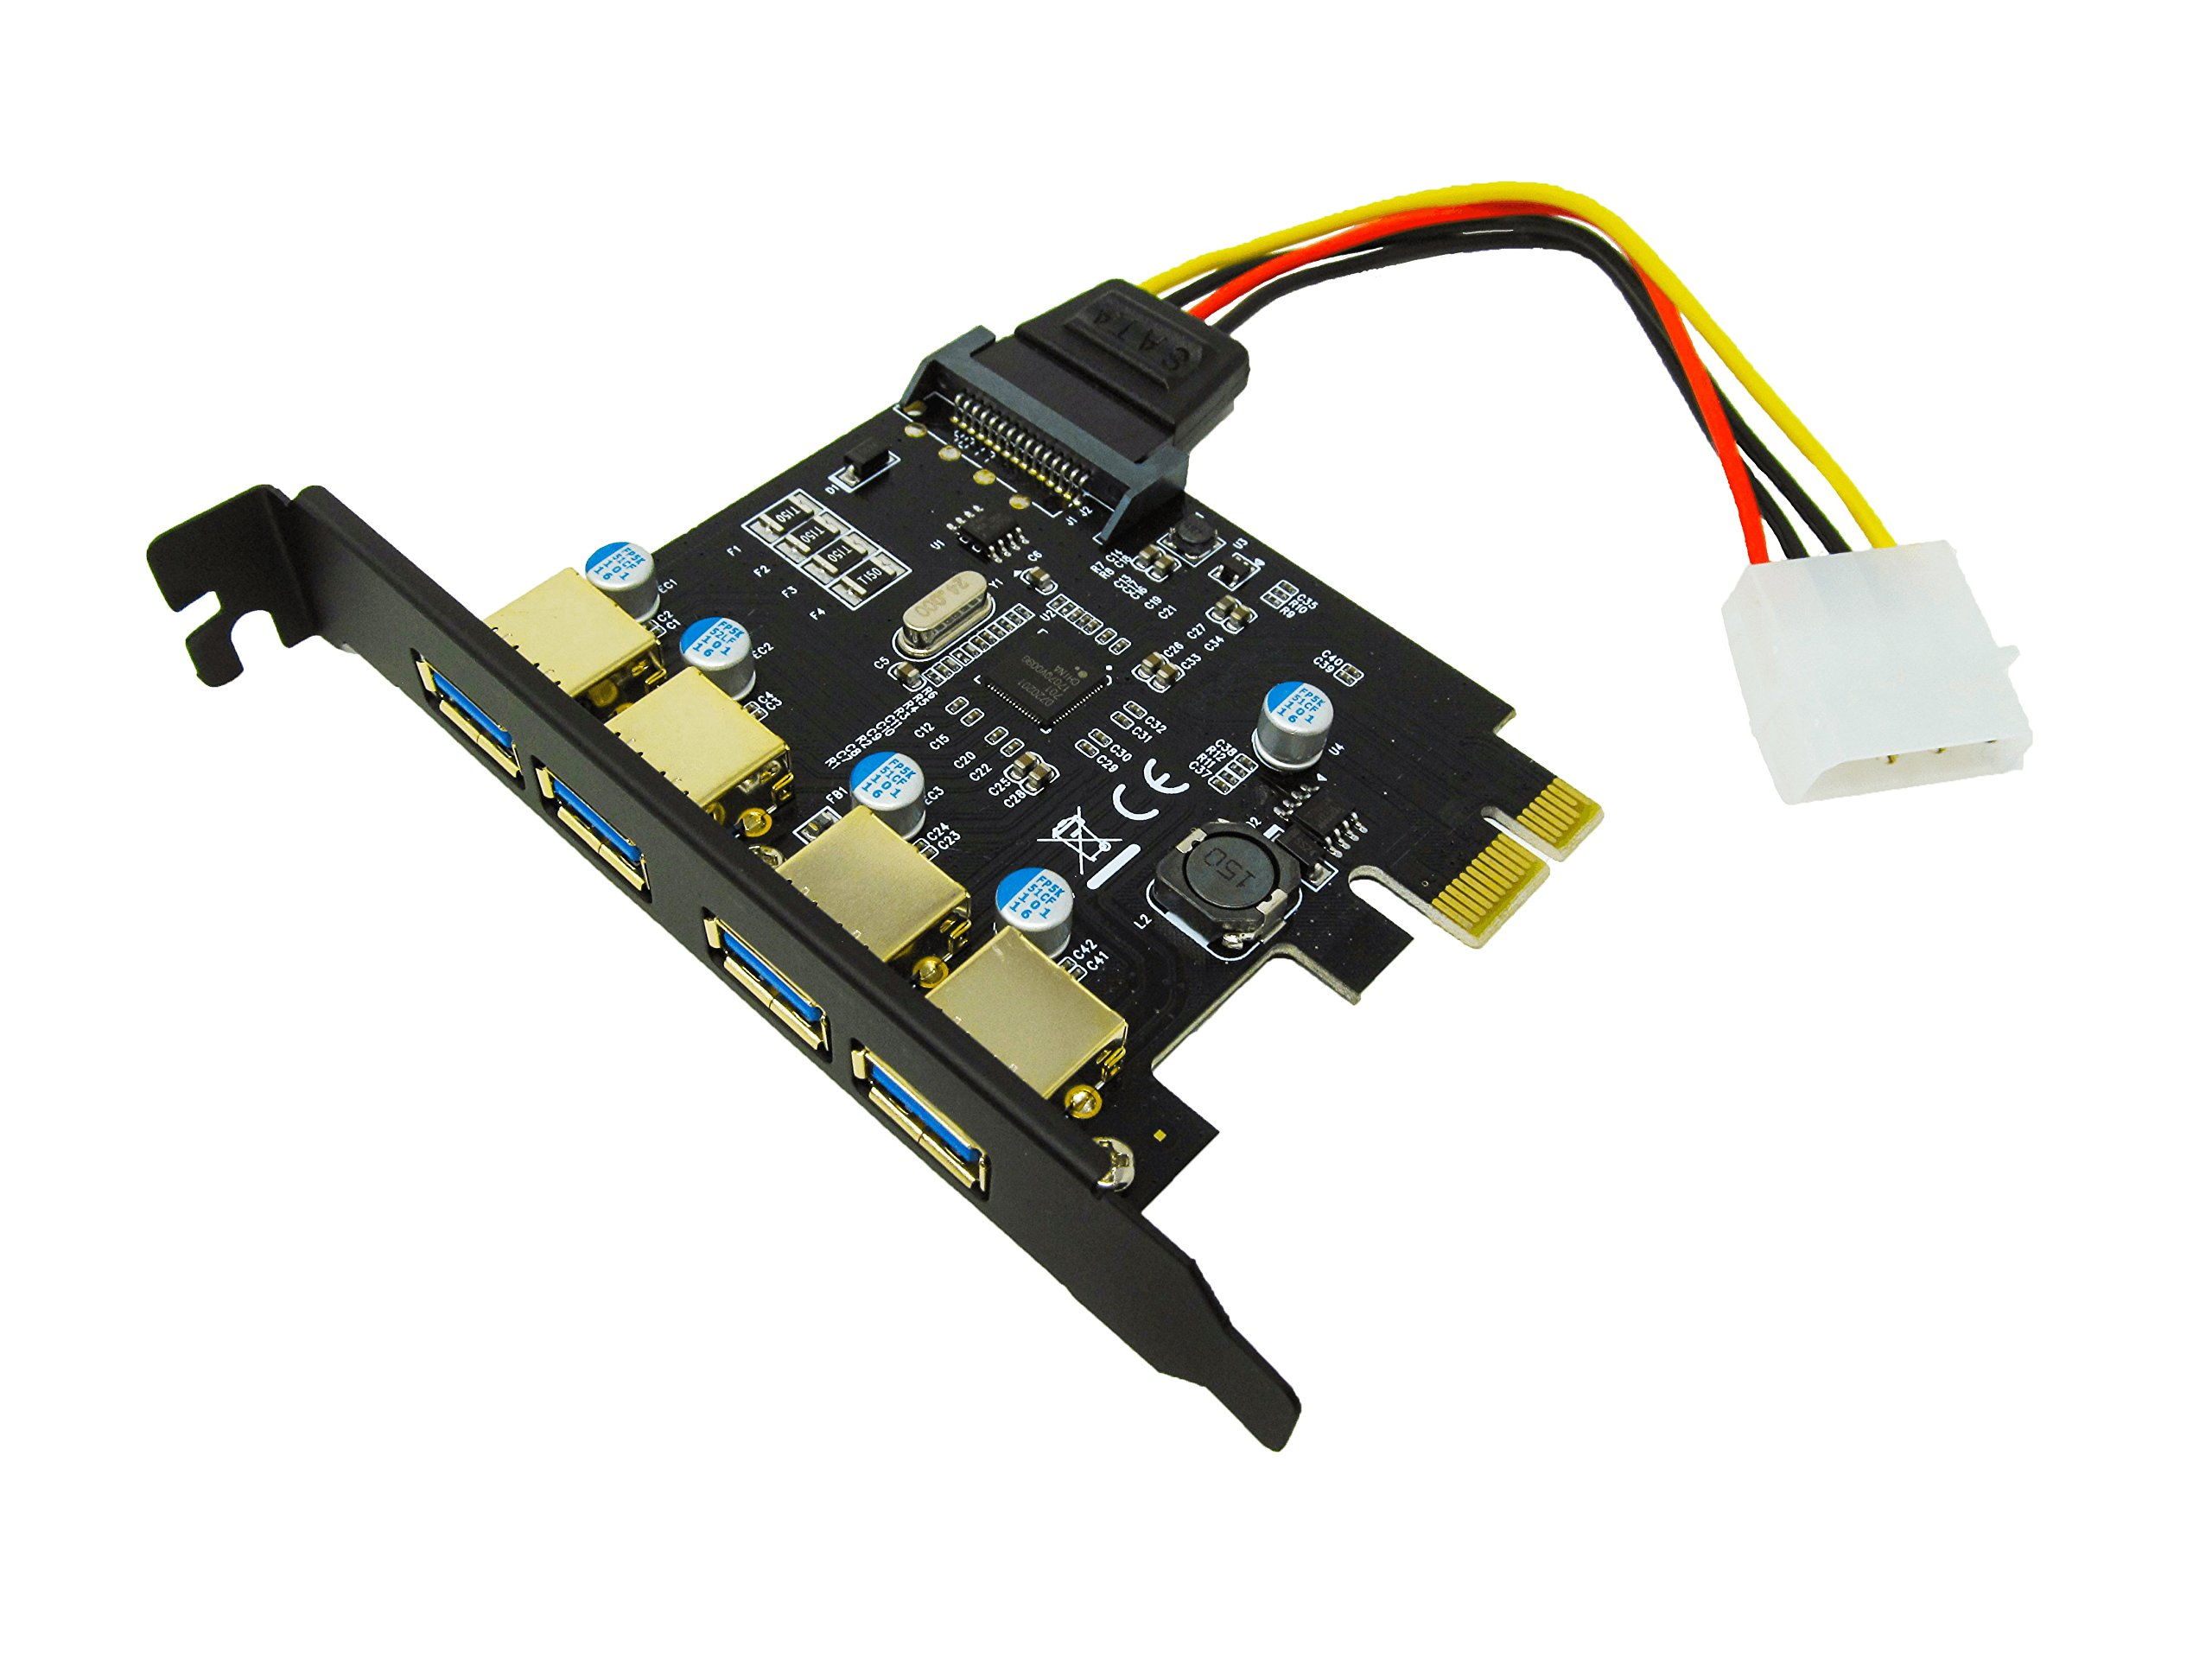 Honor Digital Techs PCI-E to USB 3.0 4 Port PCI Express Expansion Card (PCIe Card), Superspeed USB 3.0 Card with 15-Pin Power Connector for Desktops, Super Speed Up to 5Gbps by Honor Digital Techs (Image #5)